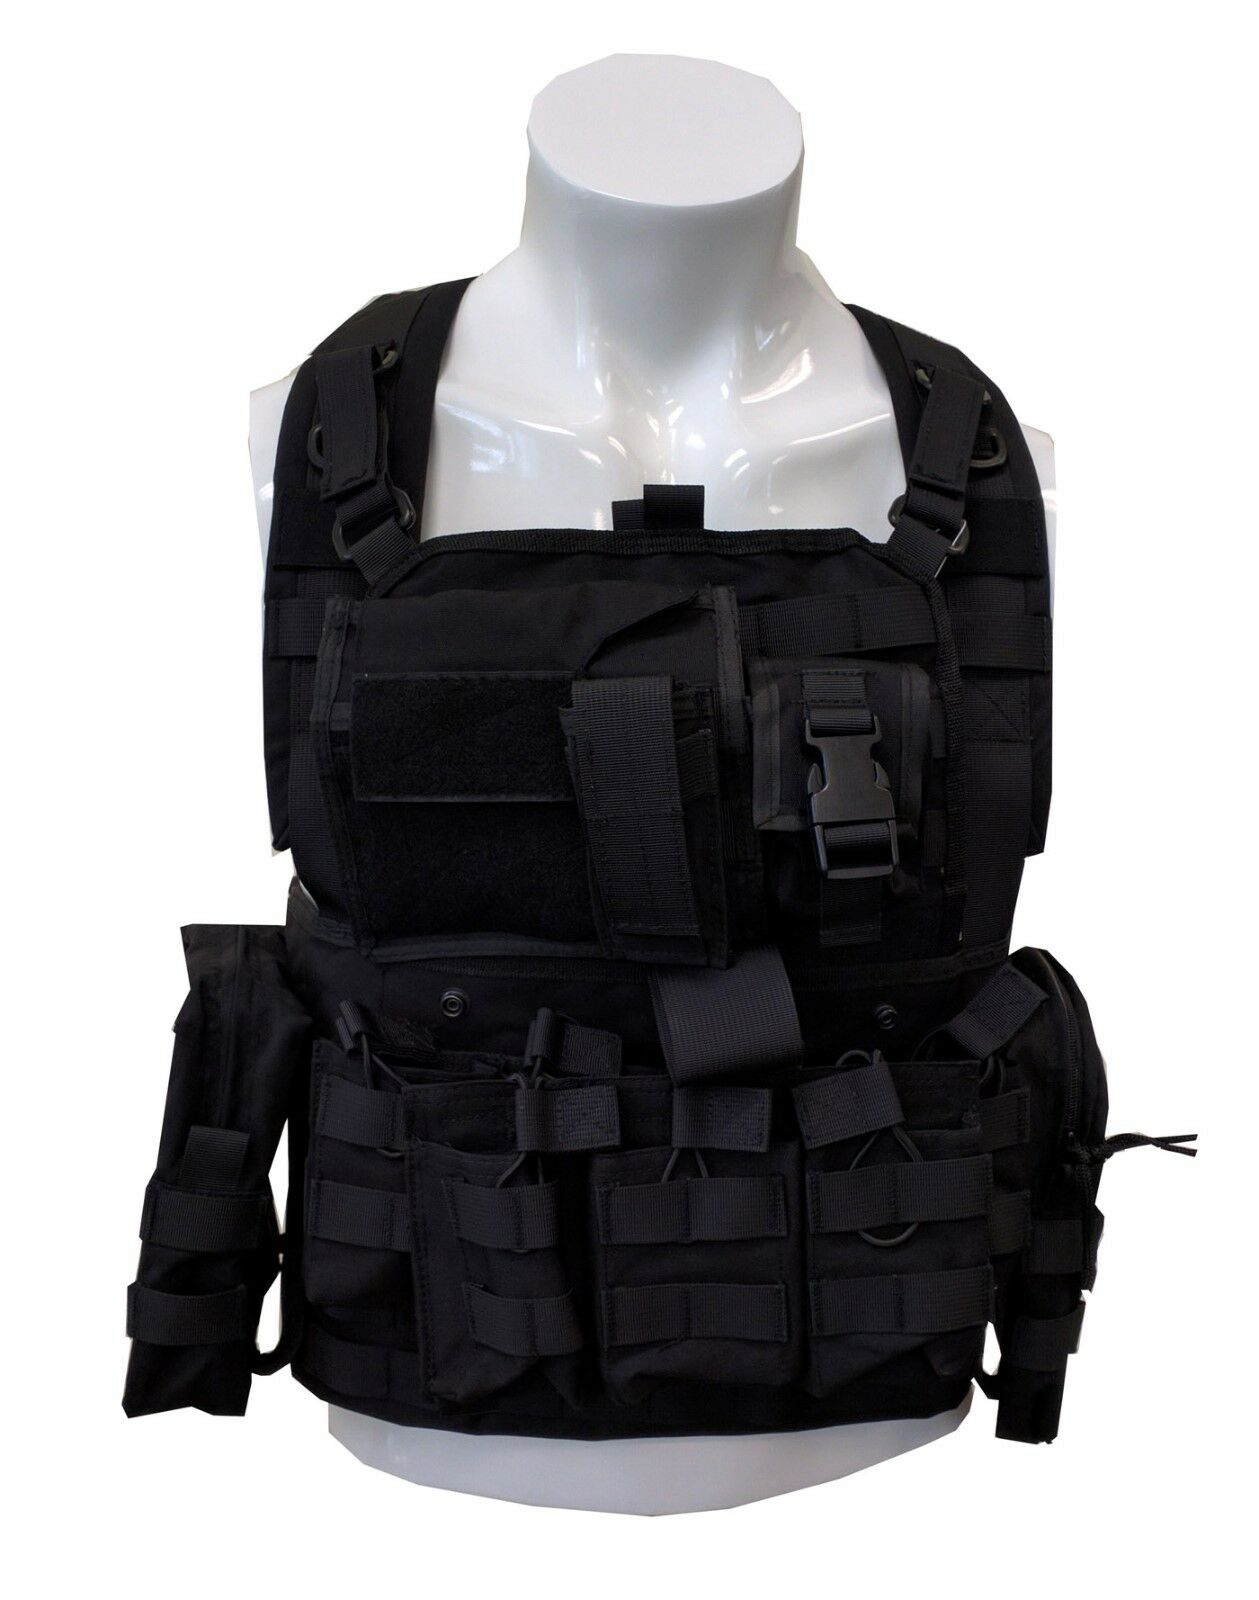 Military Army Fans Carrier Outdoor Tactical Sport MOLLE Gear Adjustable Vest 21